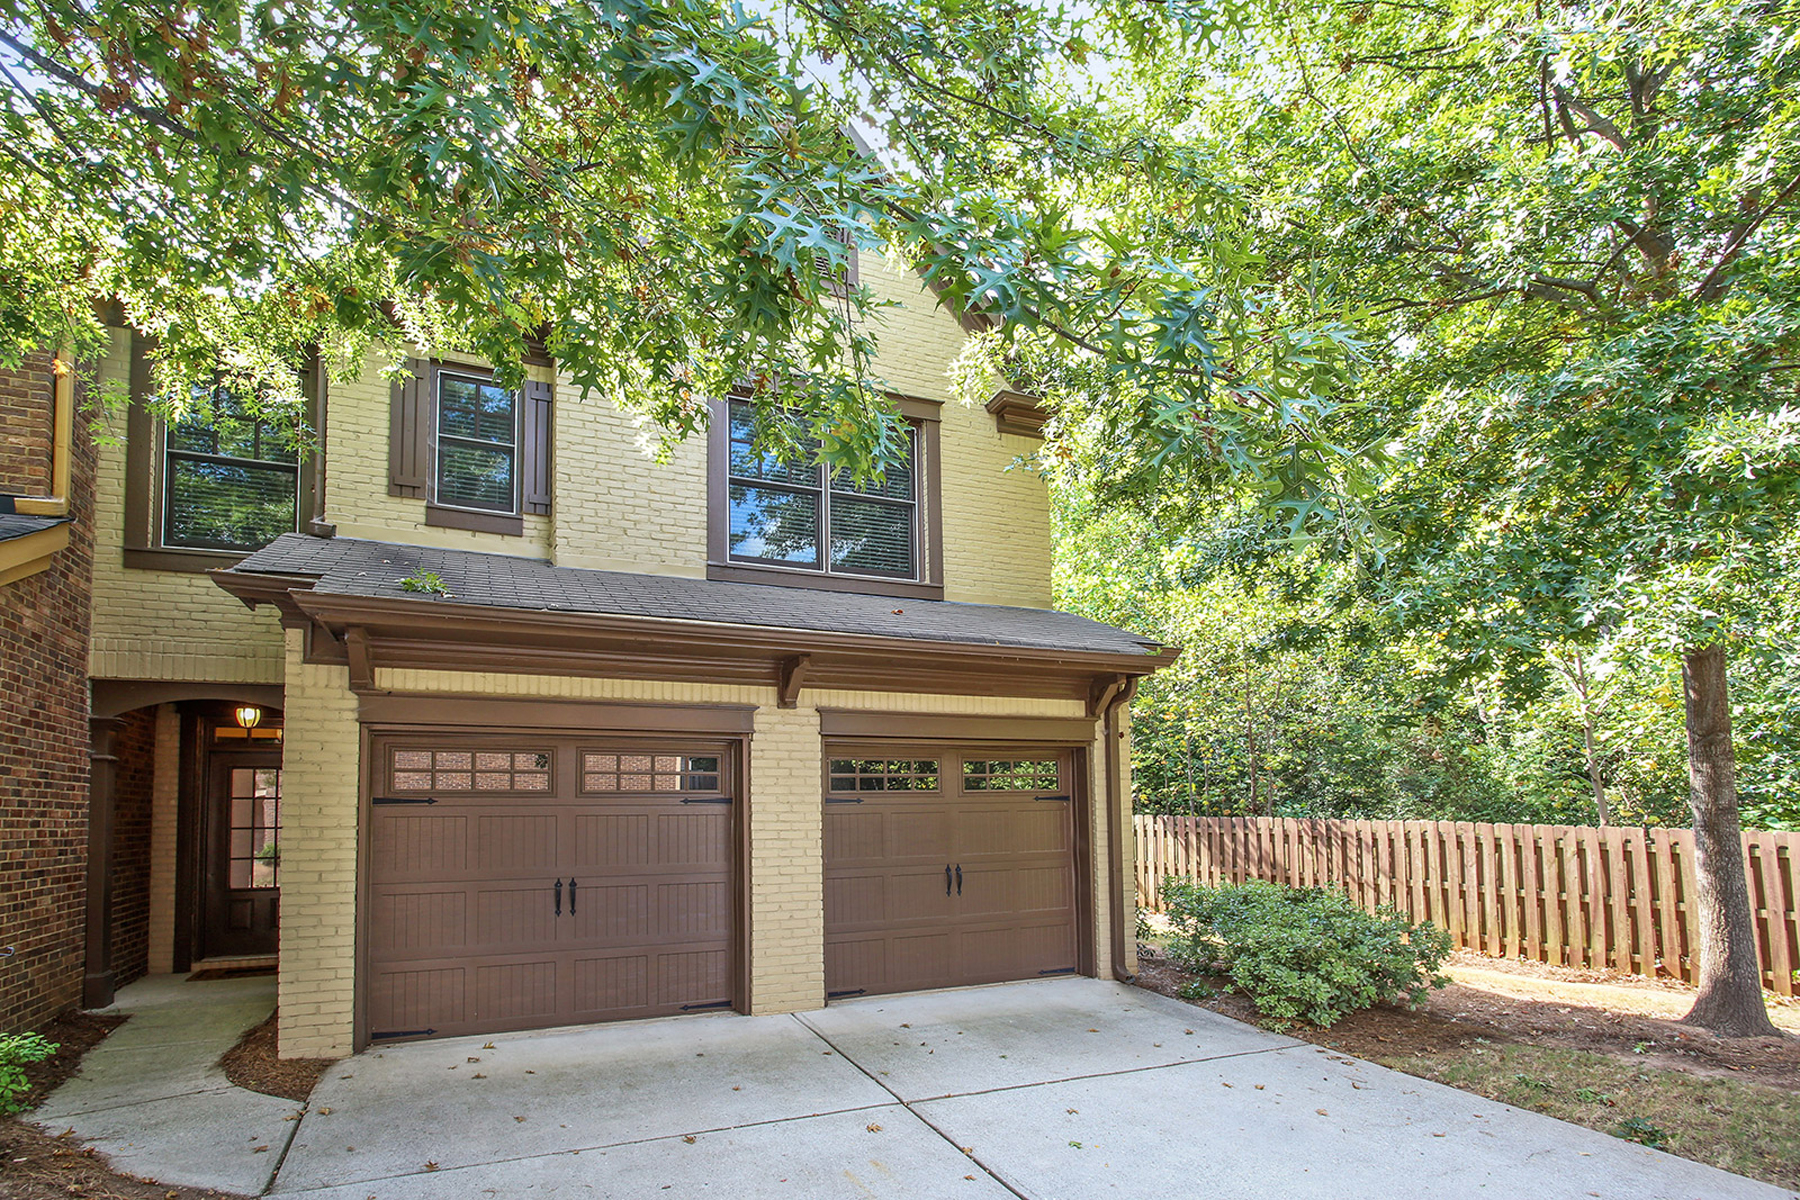 townhouses للـ Sale في Beautiful End-Unit Brick Townhome In Gated Community 4942 Berkeley Oak Circle, Peachtree Corners, Georgia 30092 United States